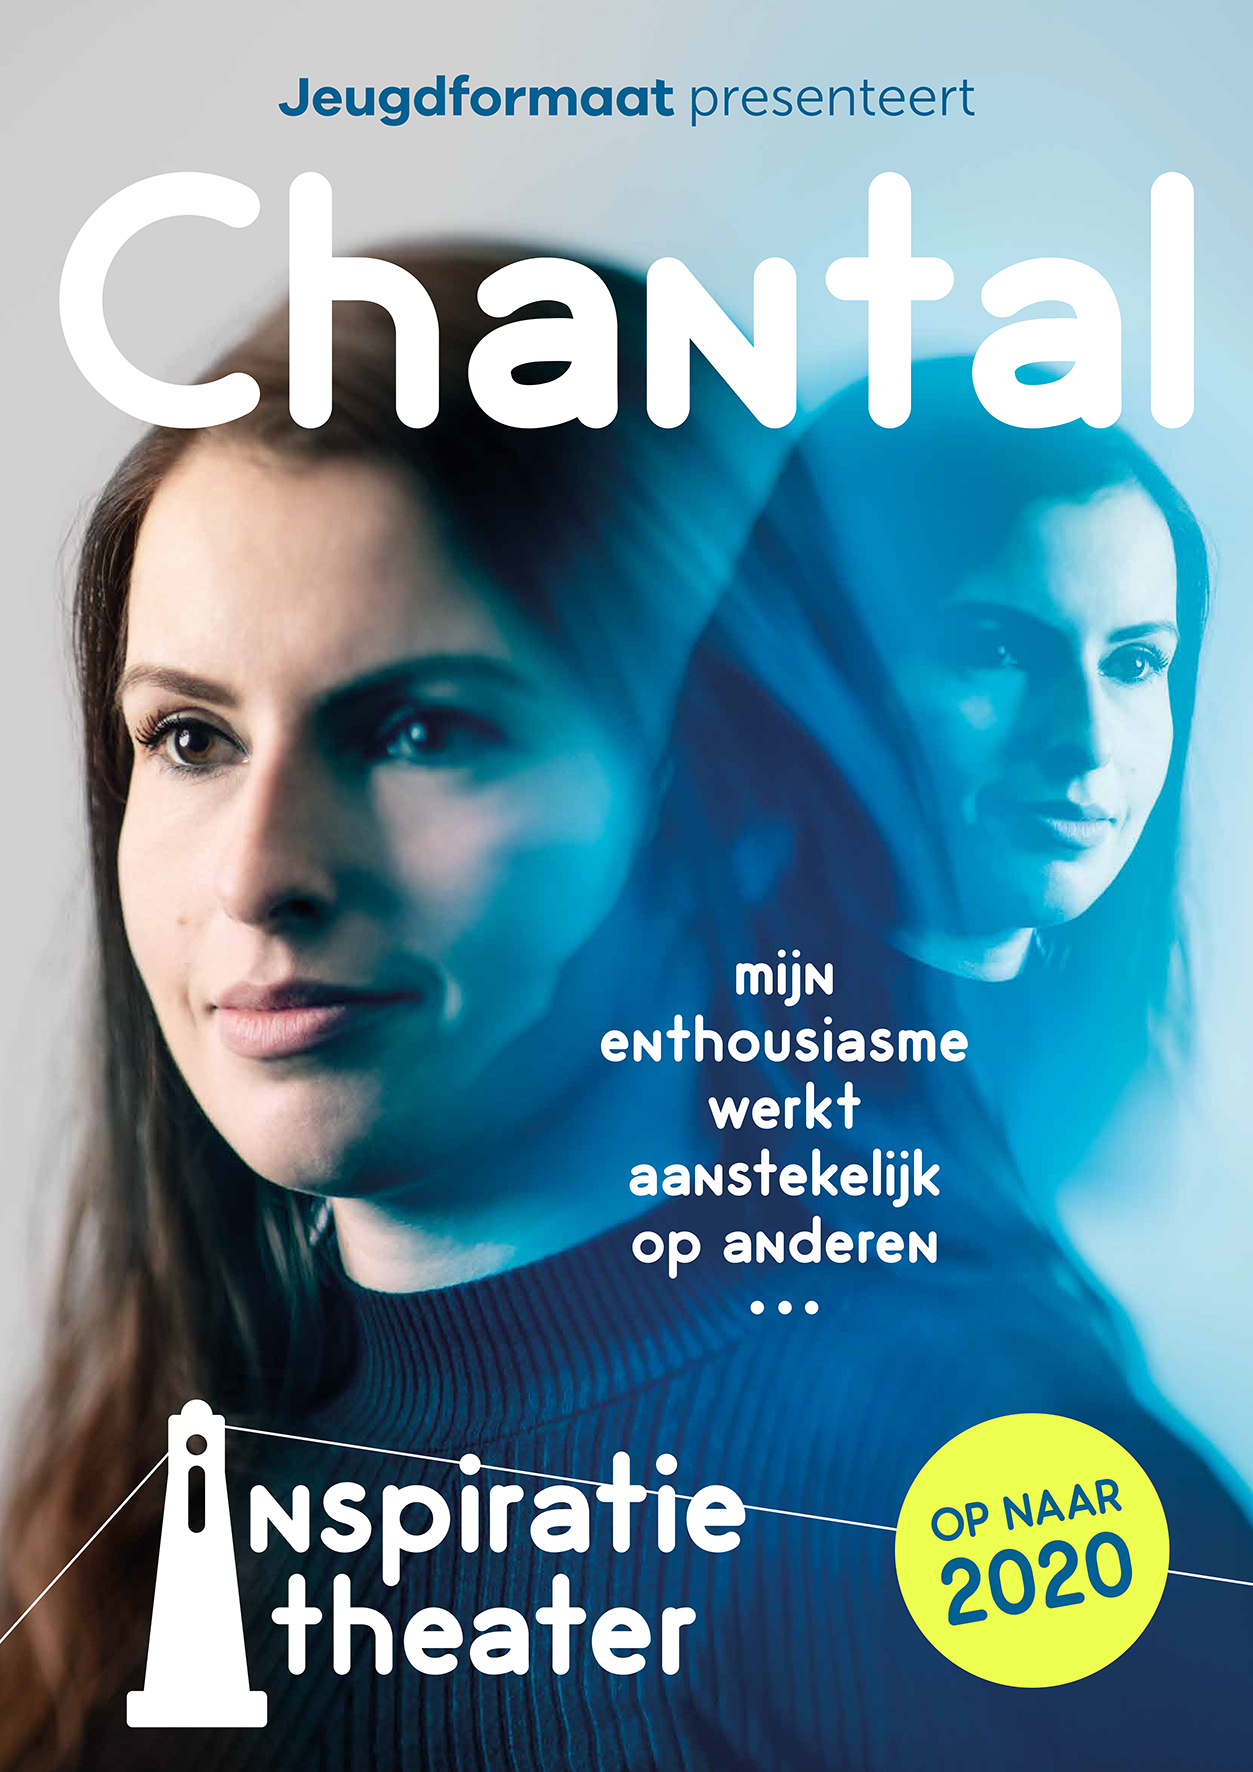 DEARDAN & Friends: Jeugdformaat presenteert, 'Inspiratietheater'.